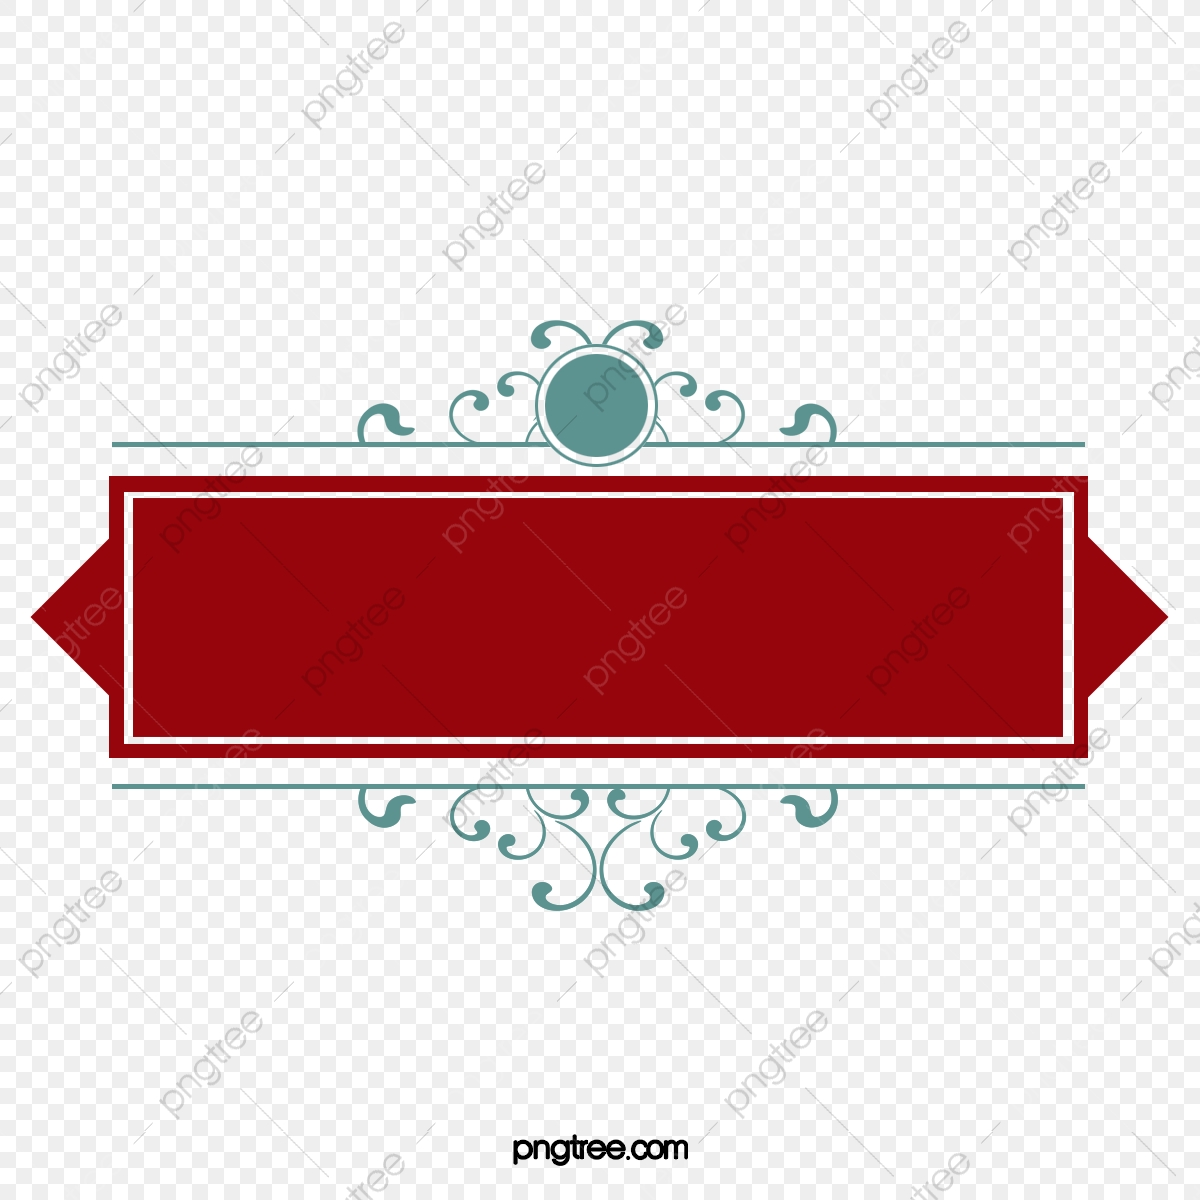 Banners clipart label. Red banner tag ribbon